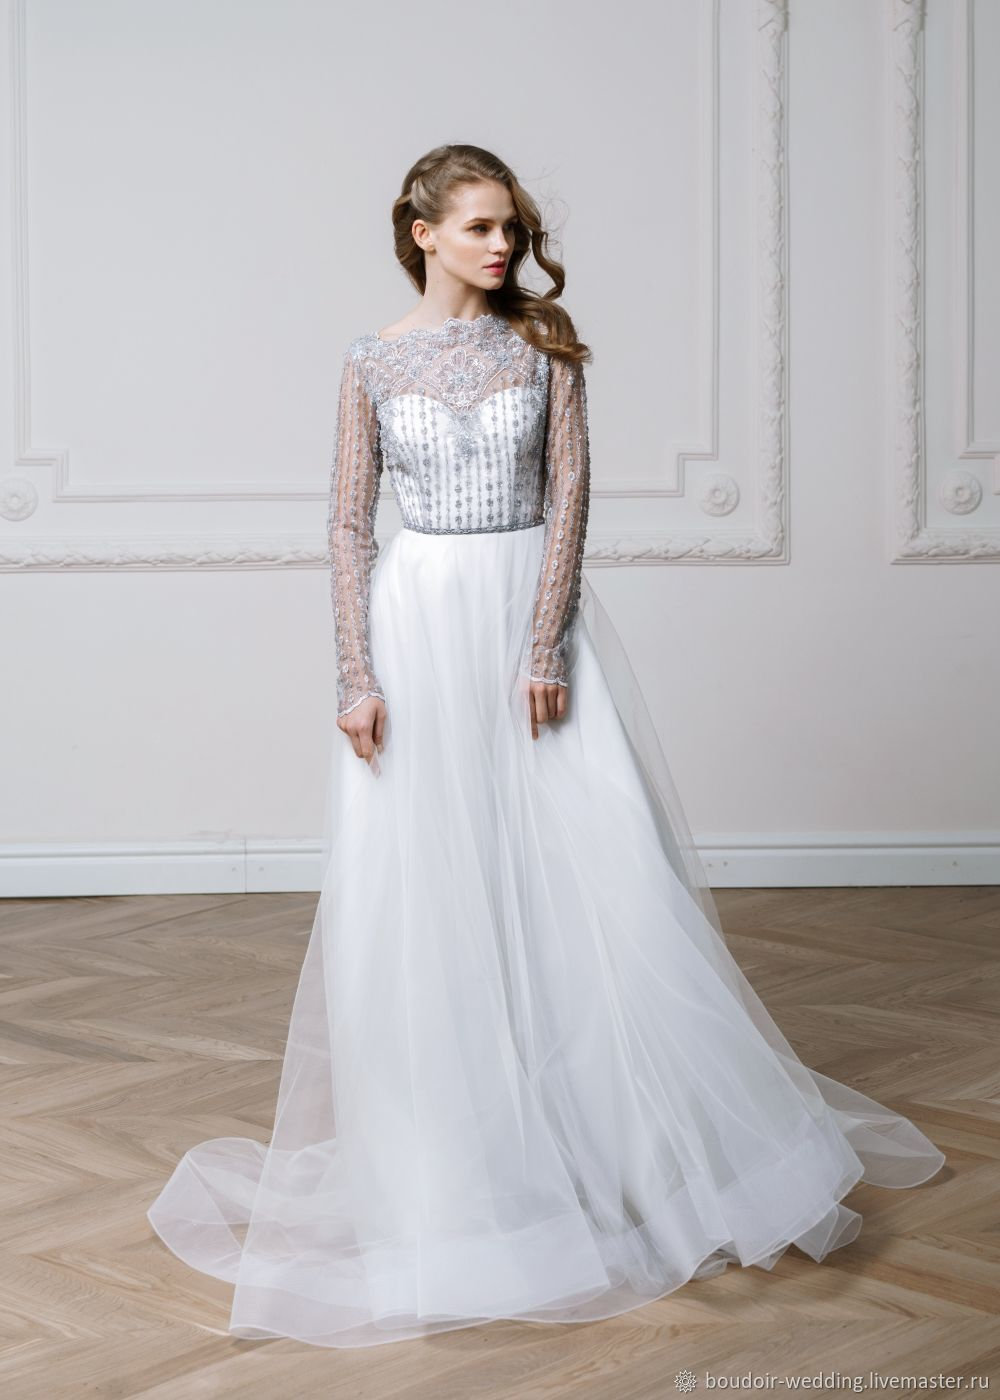 Embroidered Wedding Dress Peony Shop Online On Livemaster With